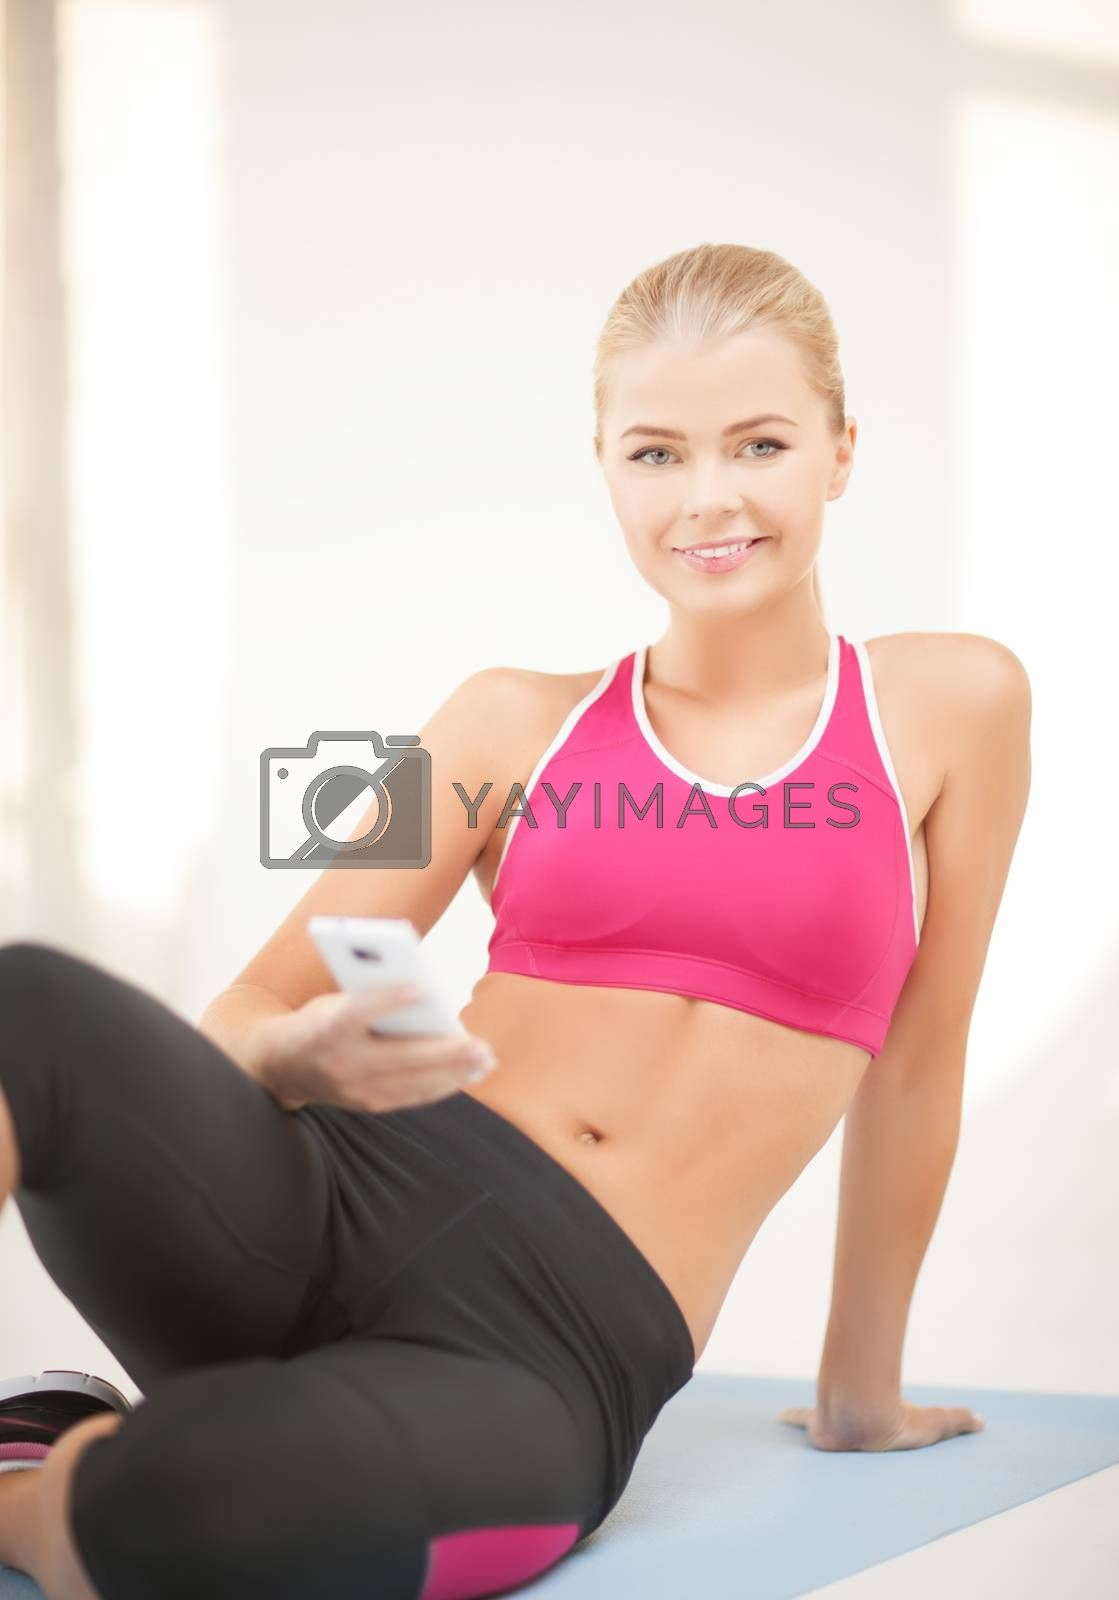 woman sitting on the floor with smartphone by dolgachov